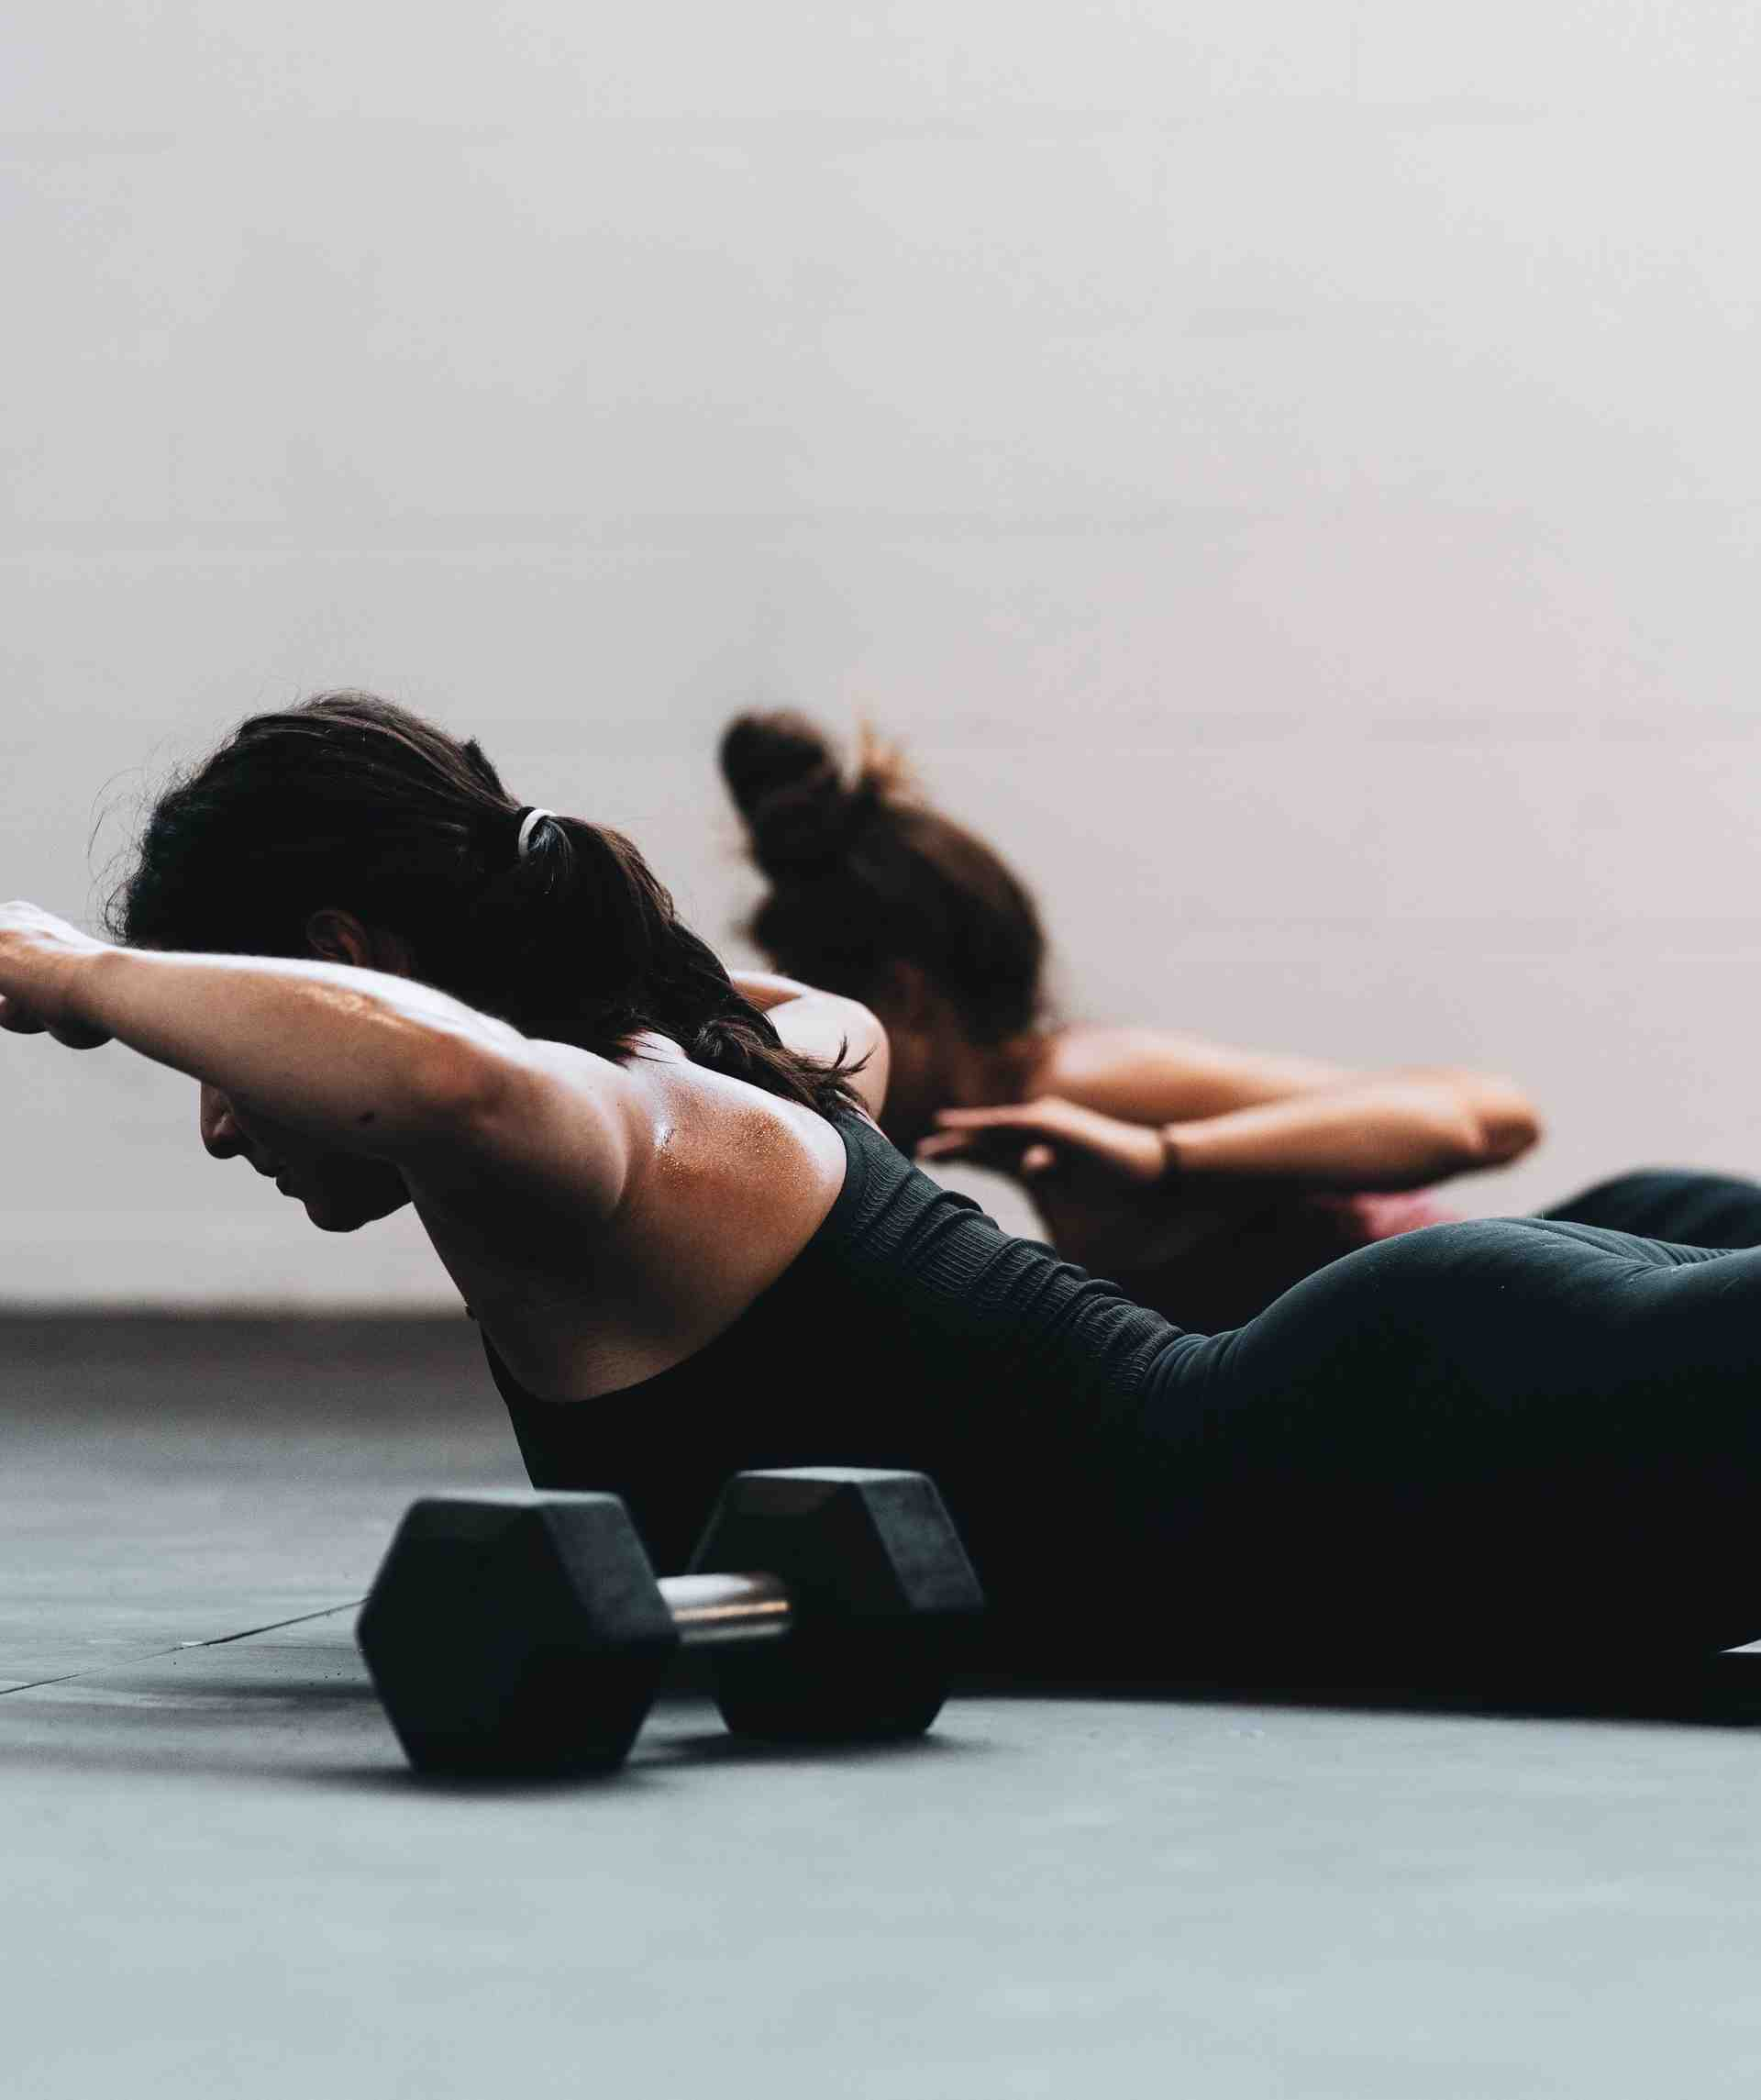 I Tried 7 Fitness Classes in 7 Days to Find the Best One